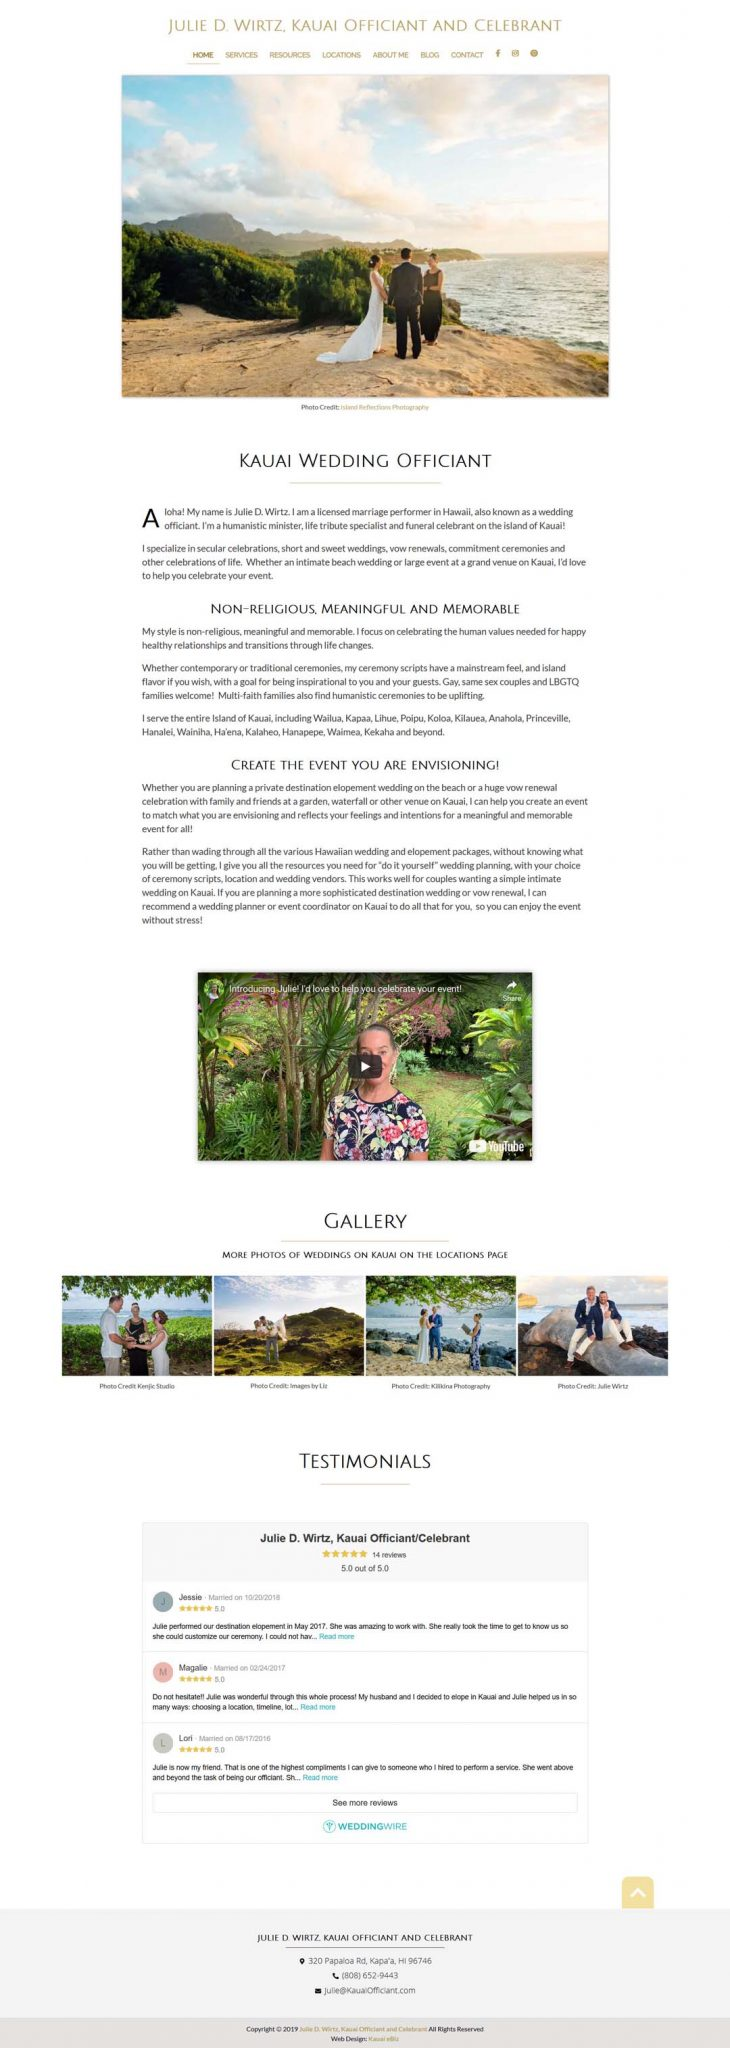 Kauai Wedding Officiant Website